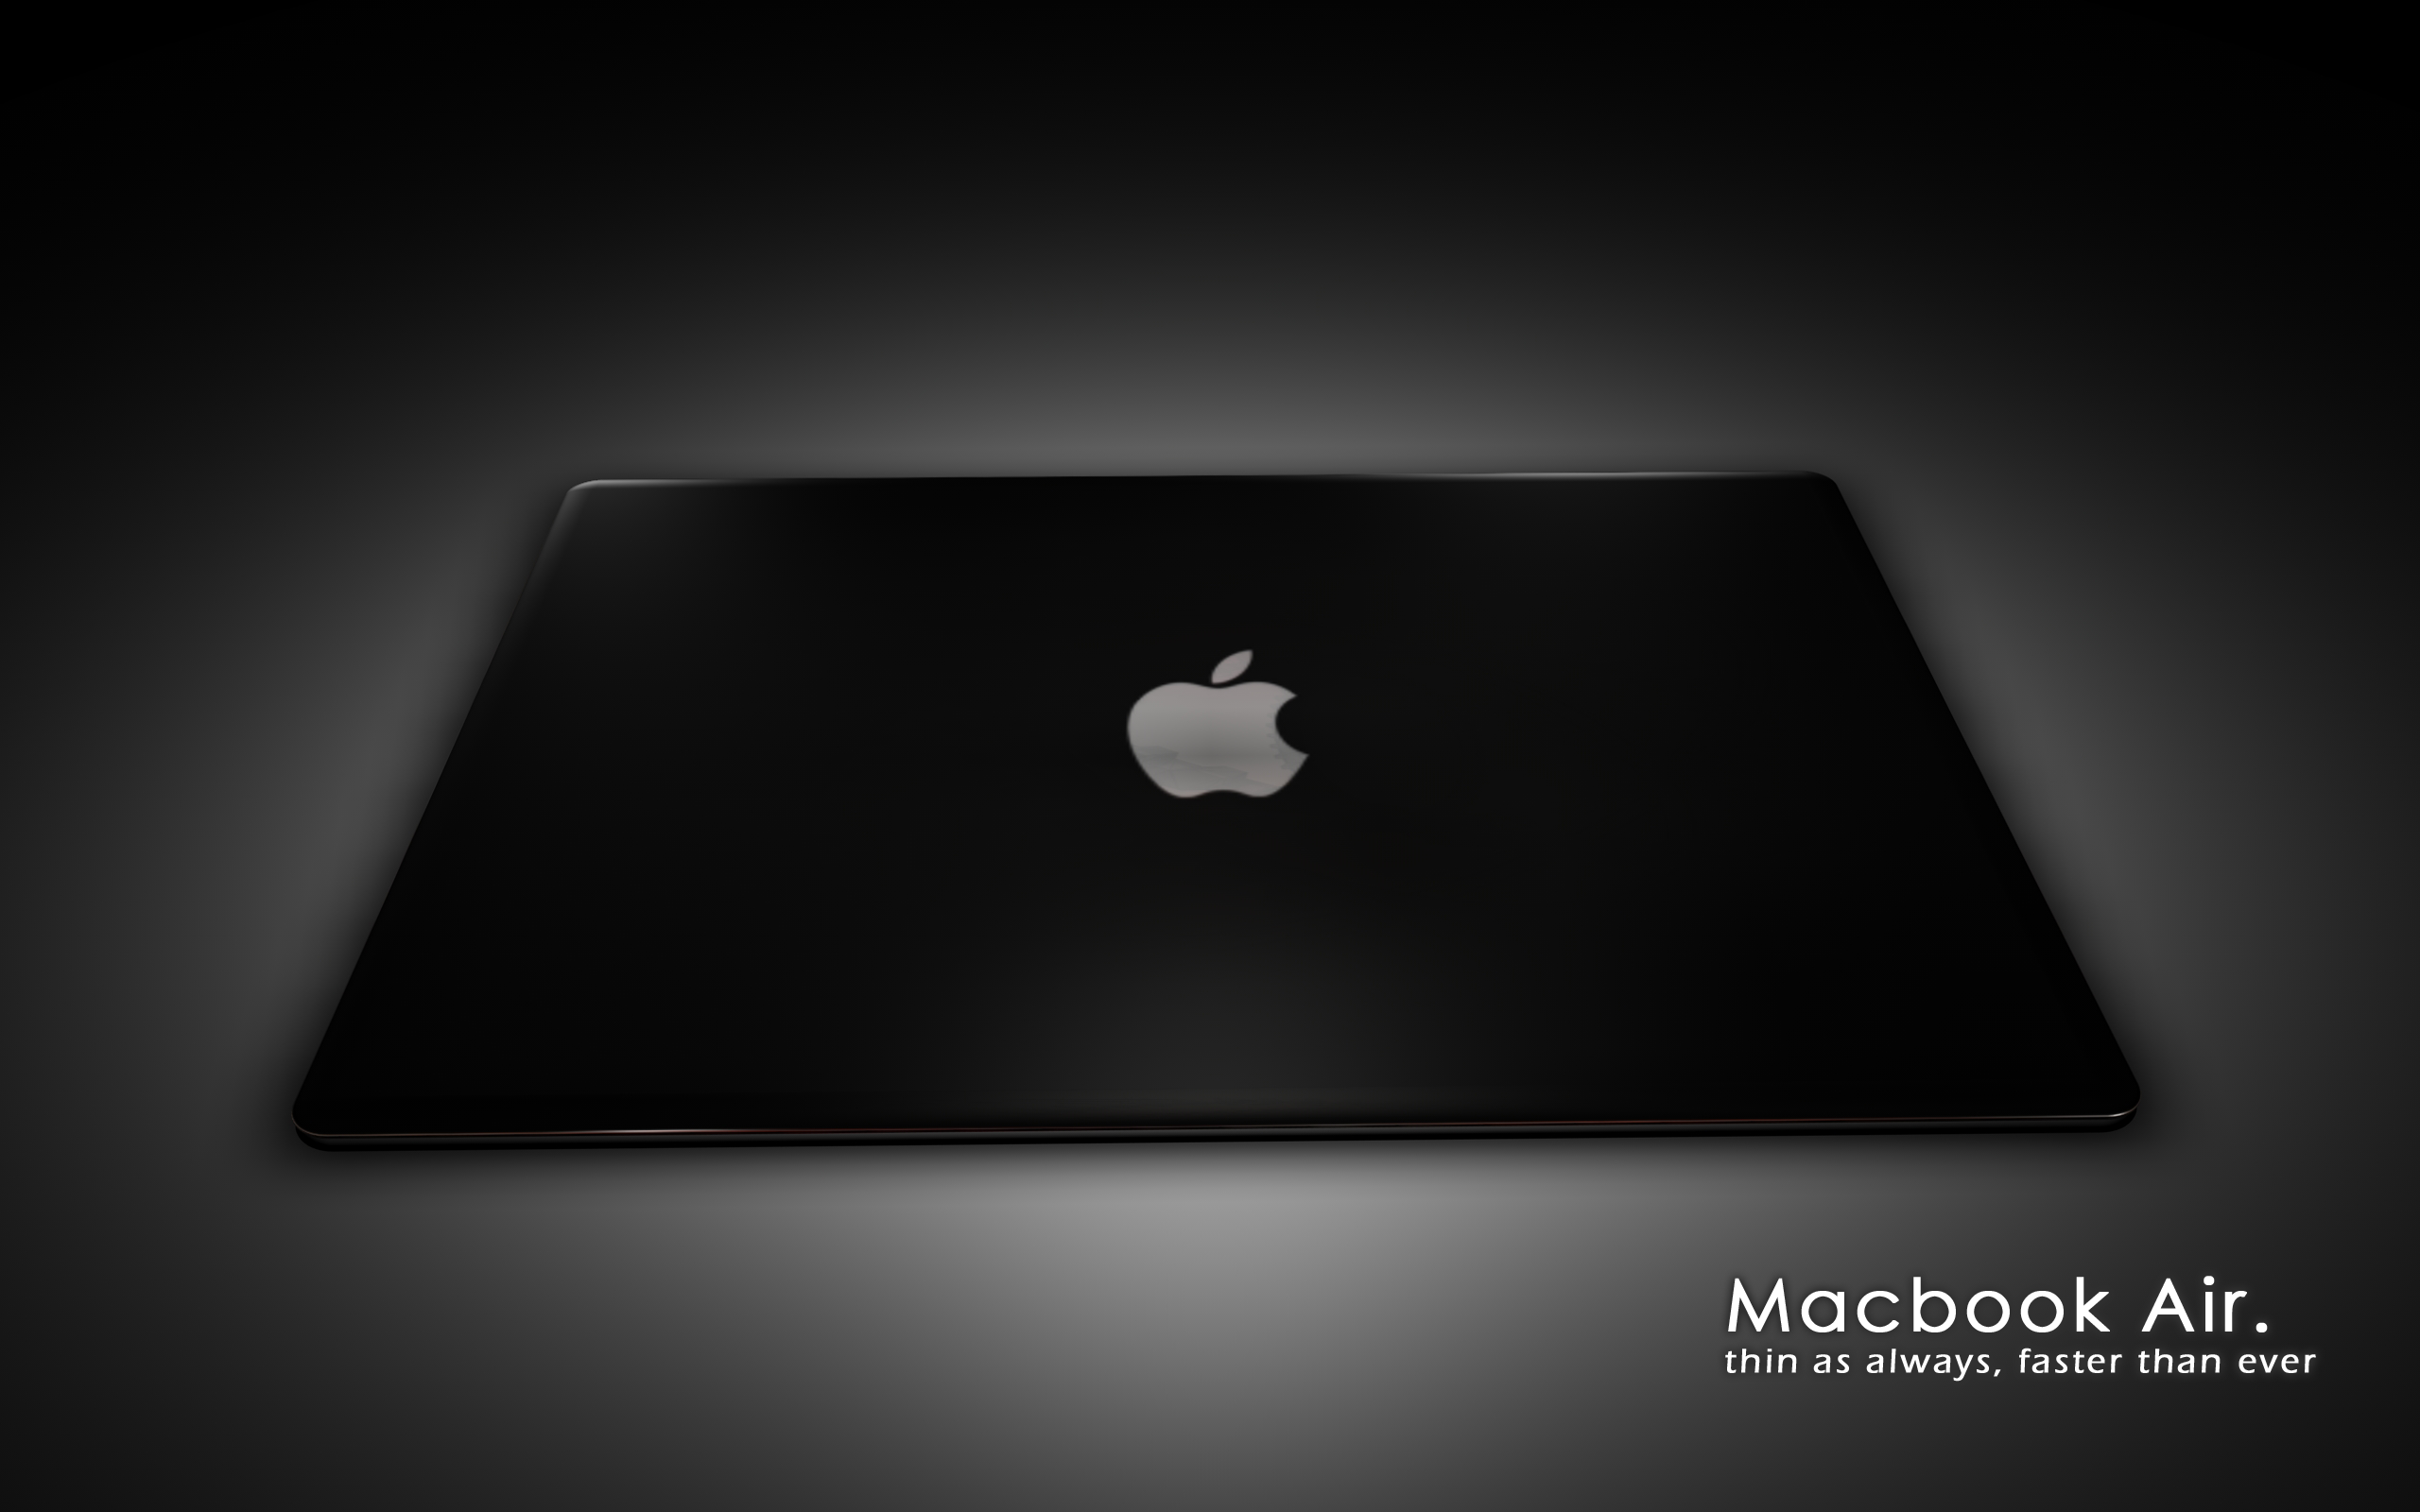 Mac Repair Canada is a locally owned and operated MacBook